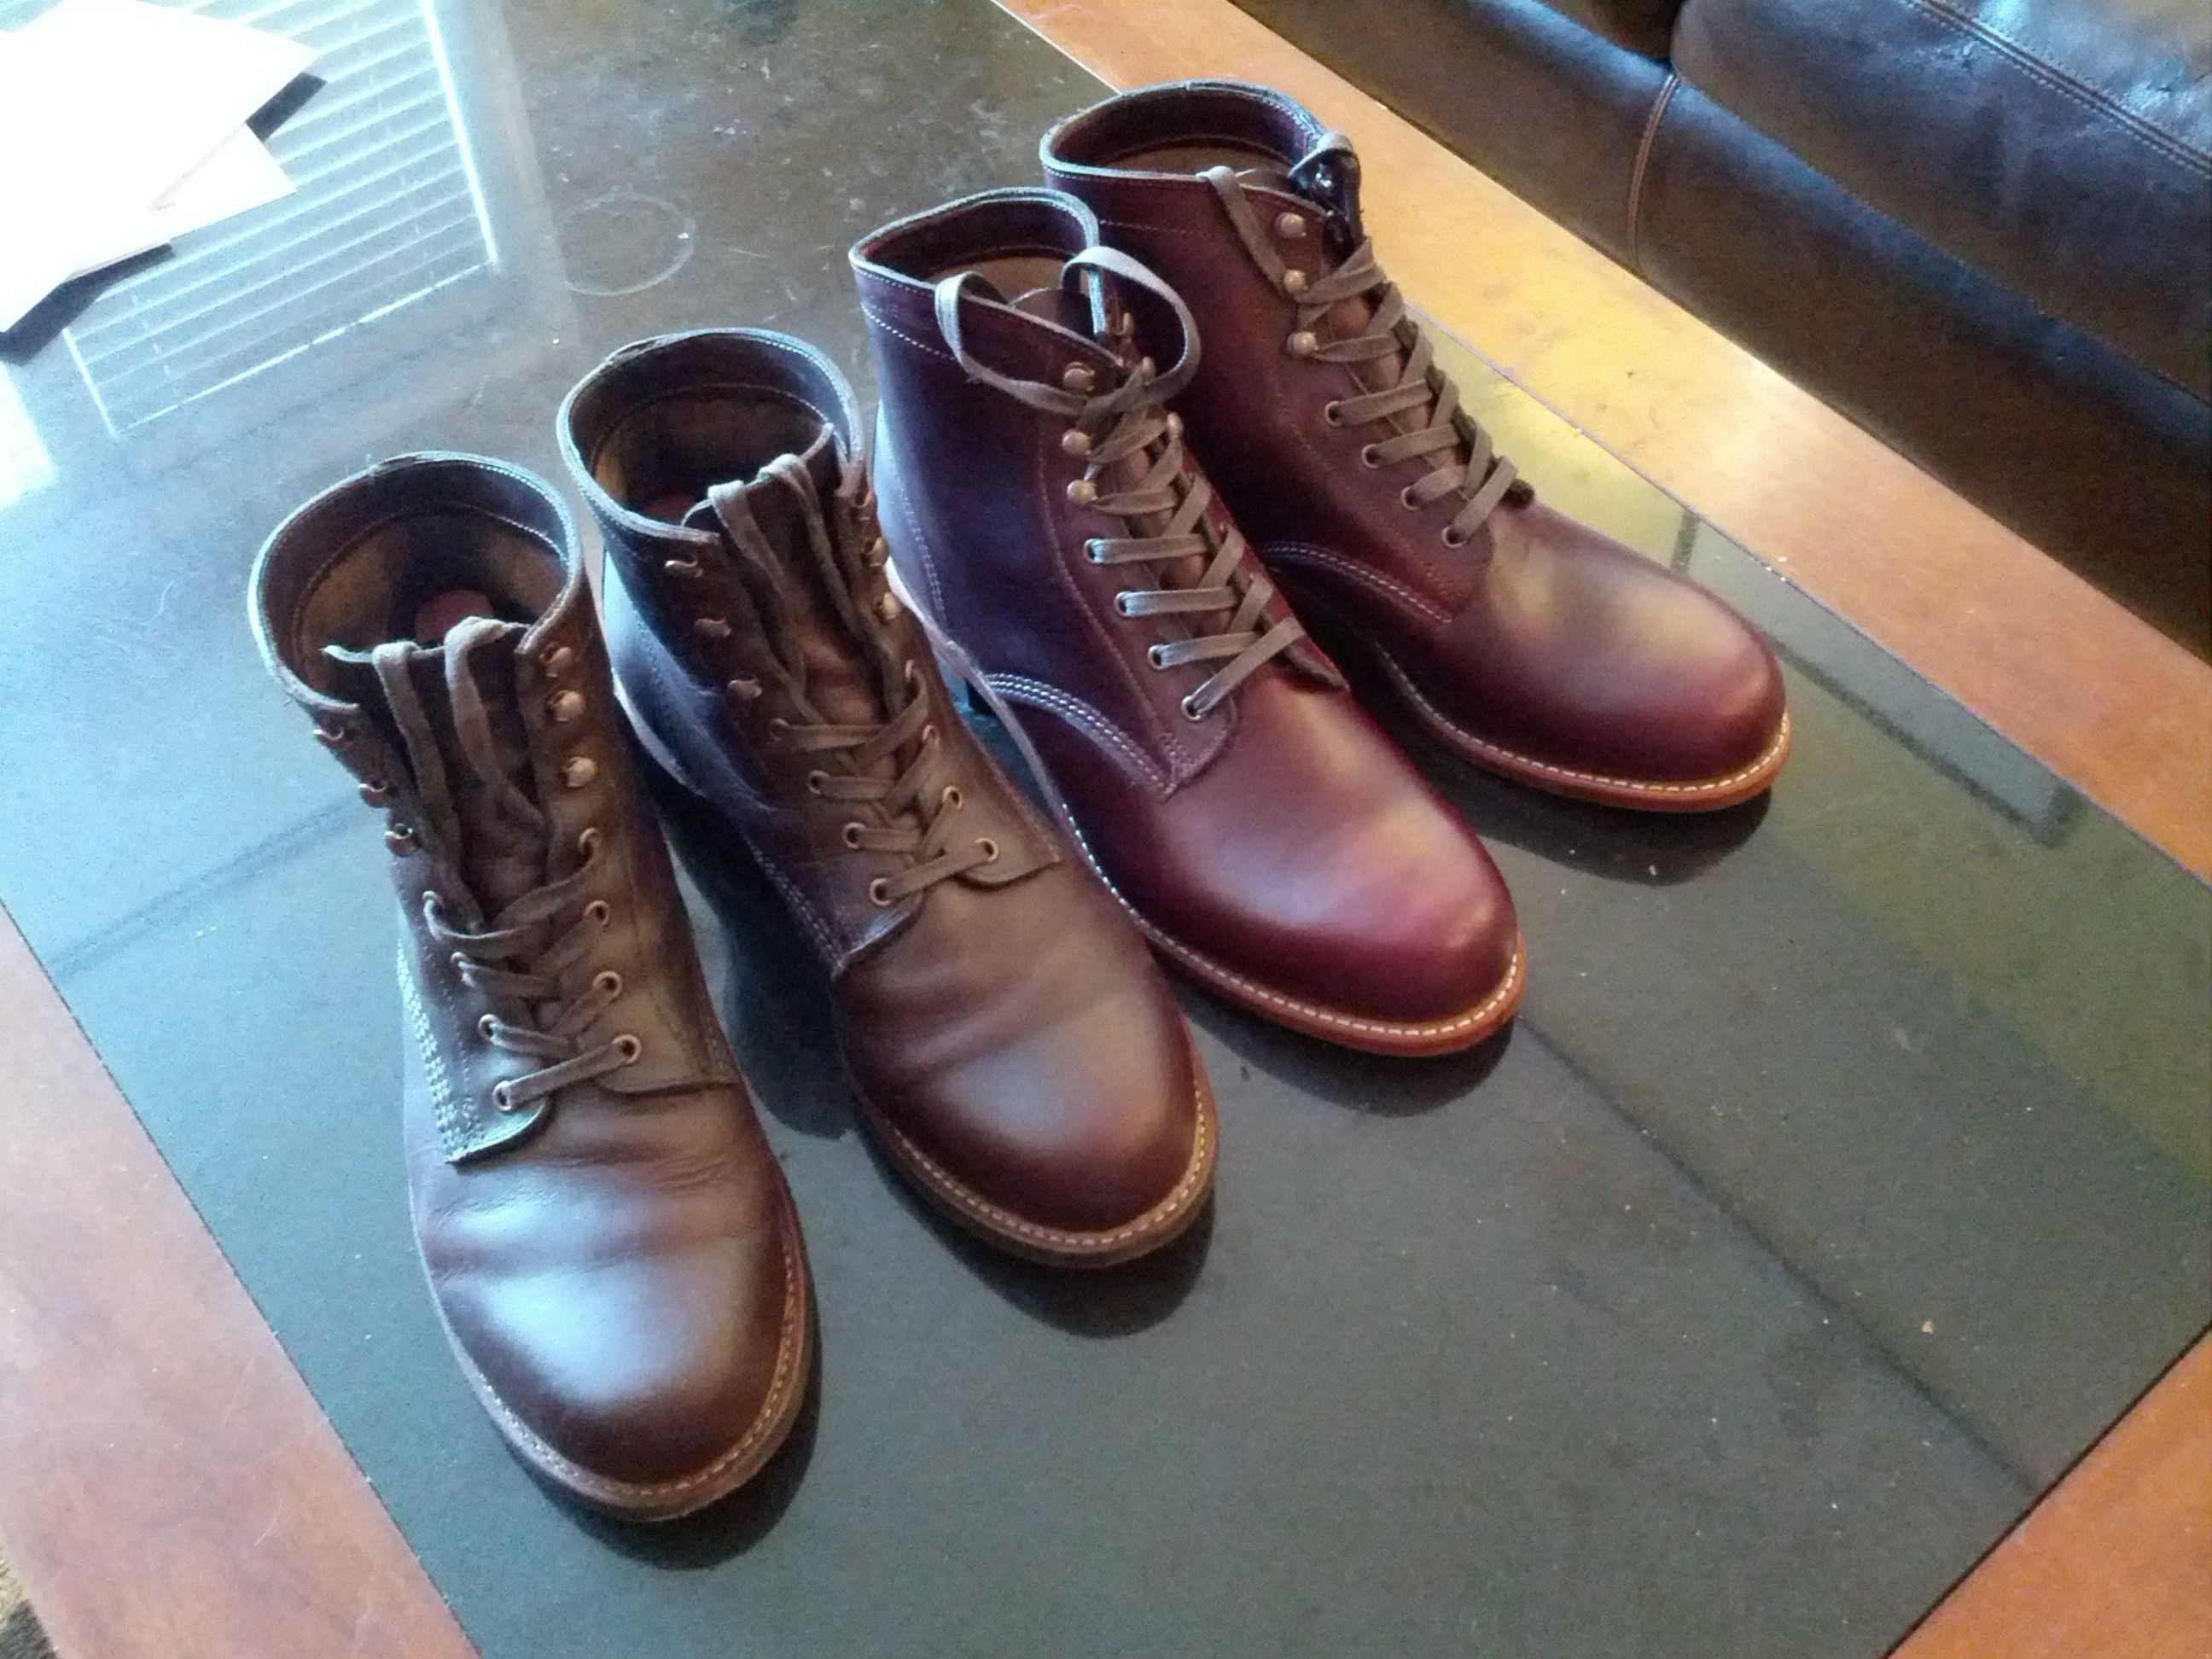 079957ddb1d Wolverine '1K' boot Brown vs. Cordovan No. 8. Color is darker in ...